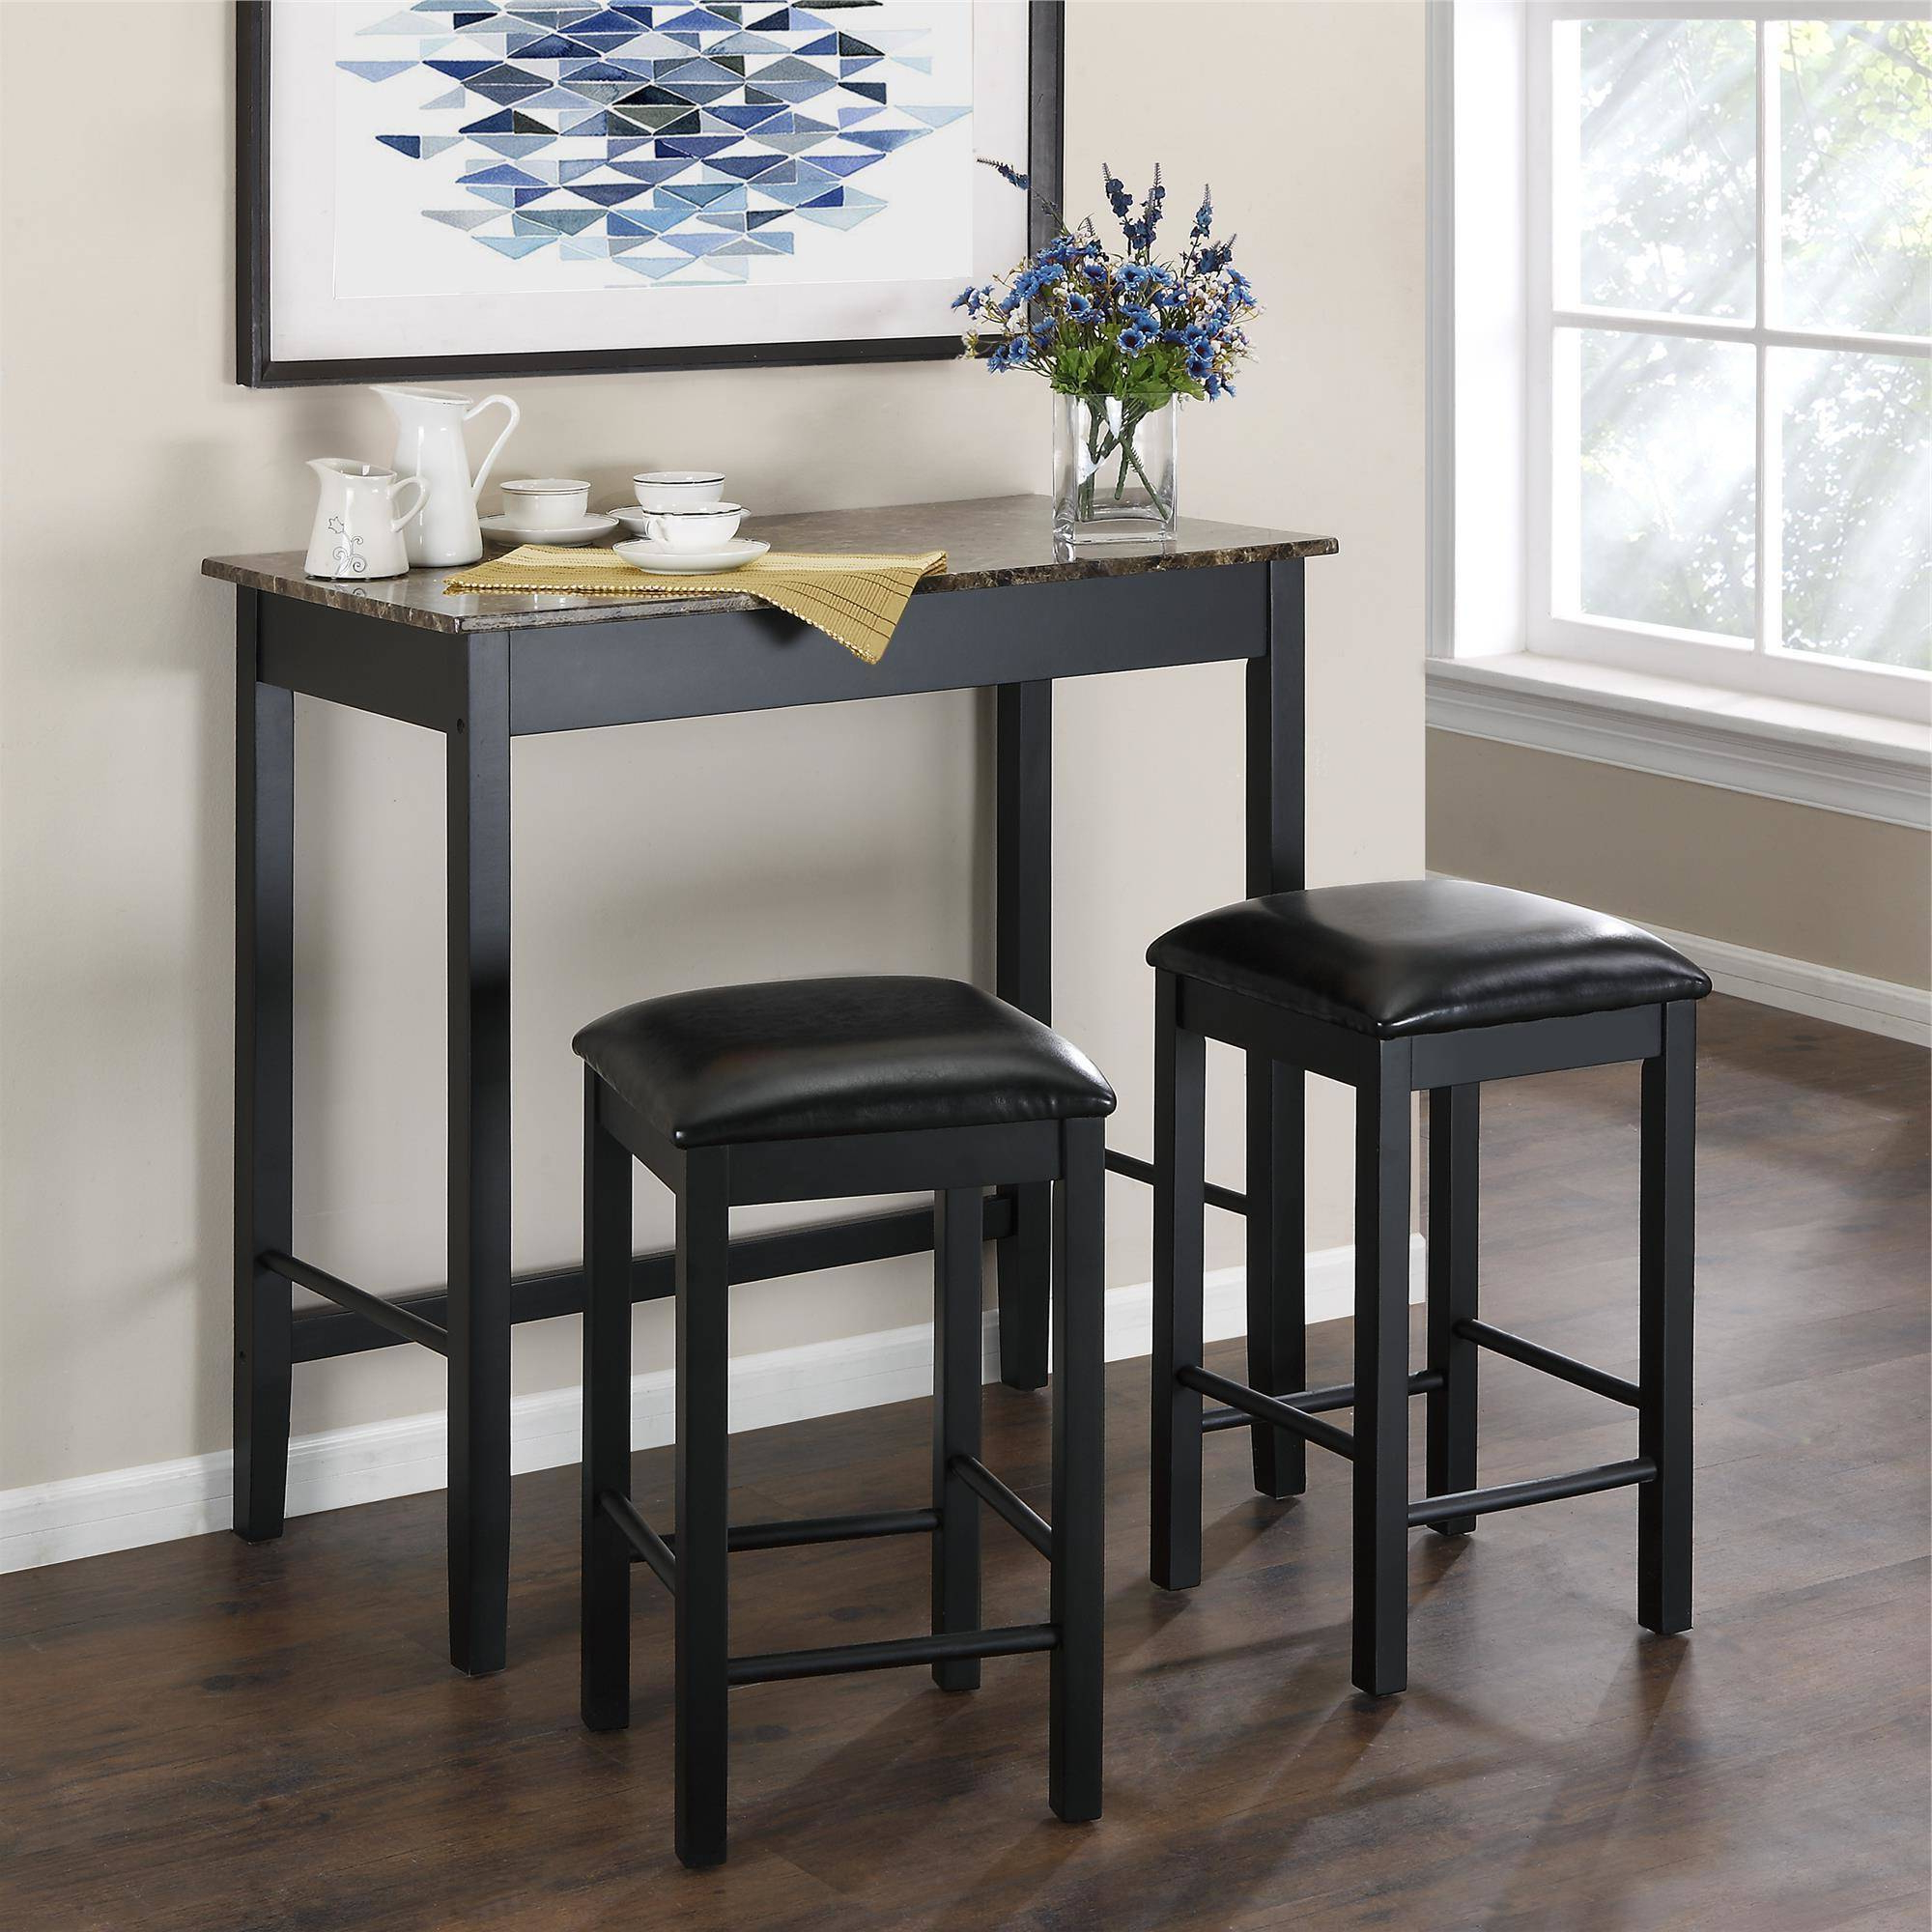 3 Piece Breakfast Dining Sets In Famous Dorel Living Devyn 3 Piece Faux Marble Pub Dining Set, Black (Gallery 20 of 20)